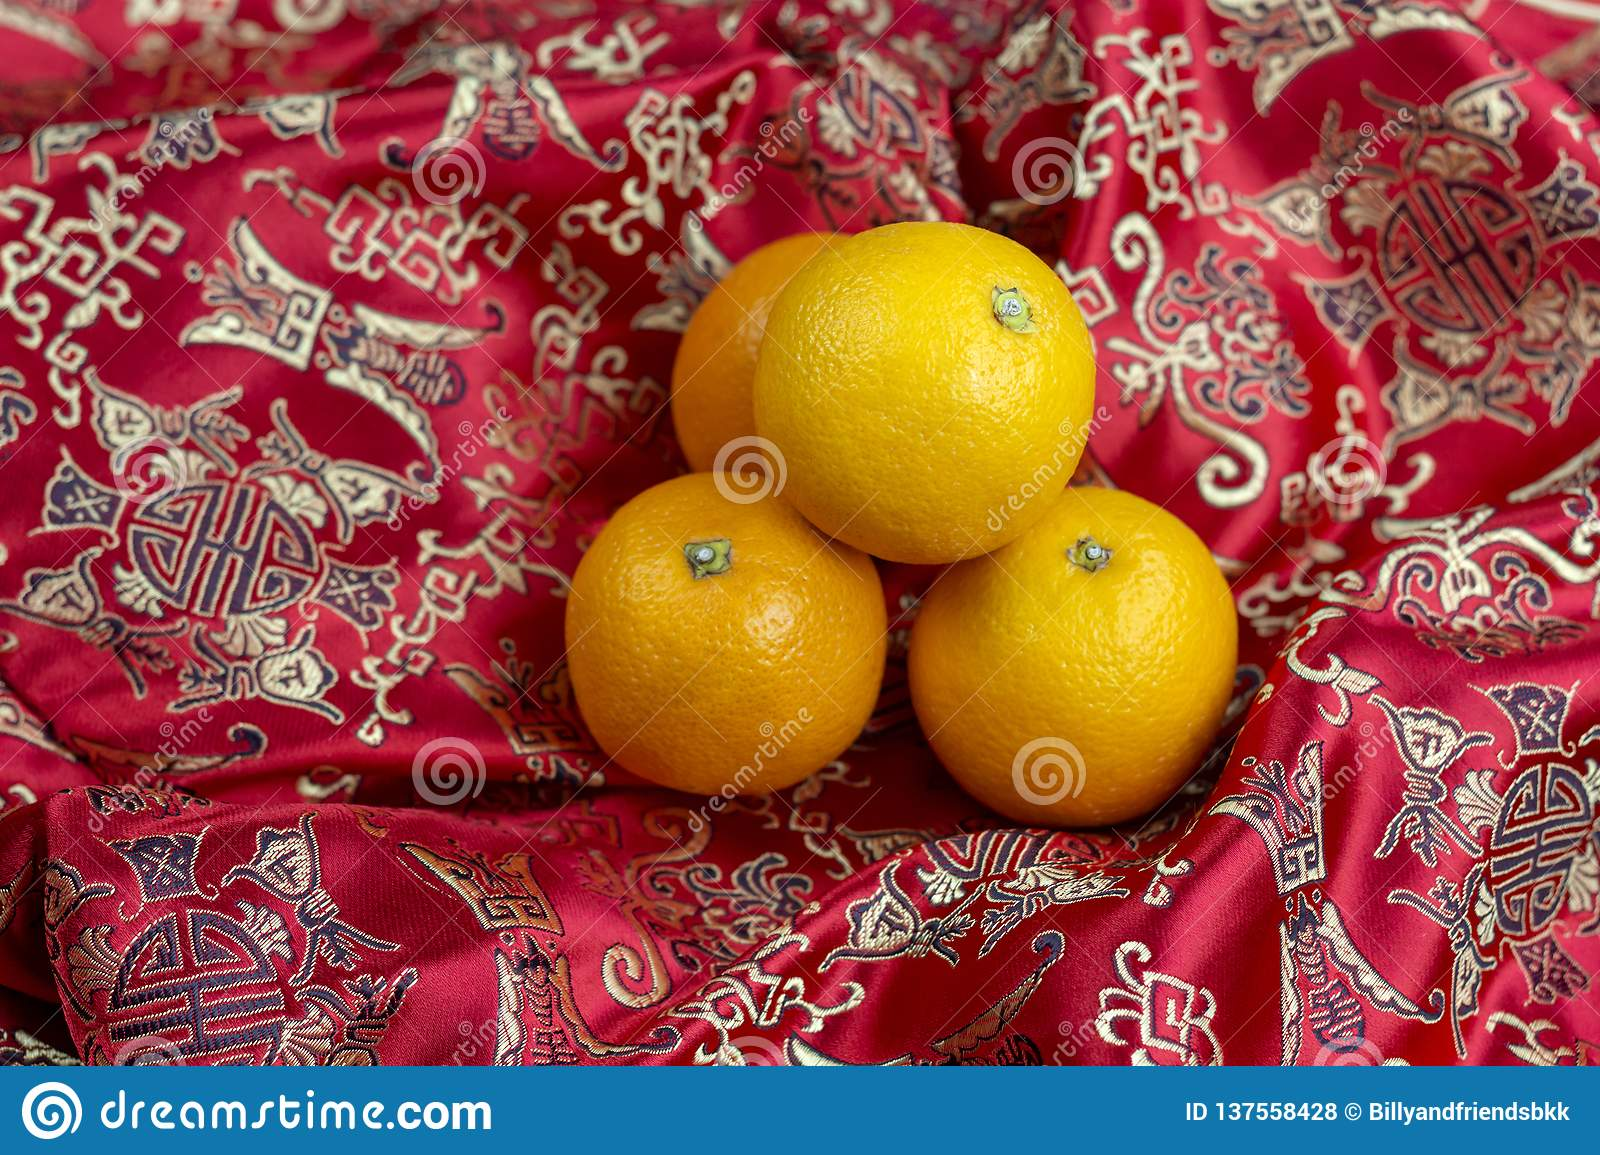 Chinese new year oranges on red Chinese textile background